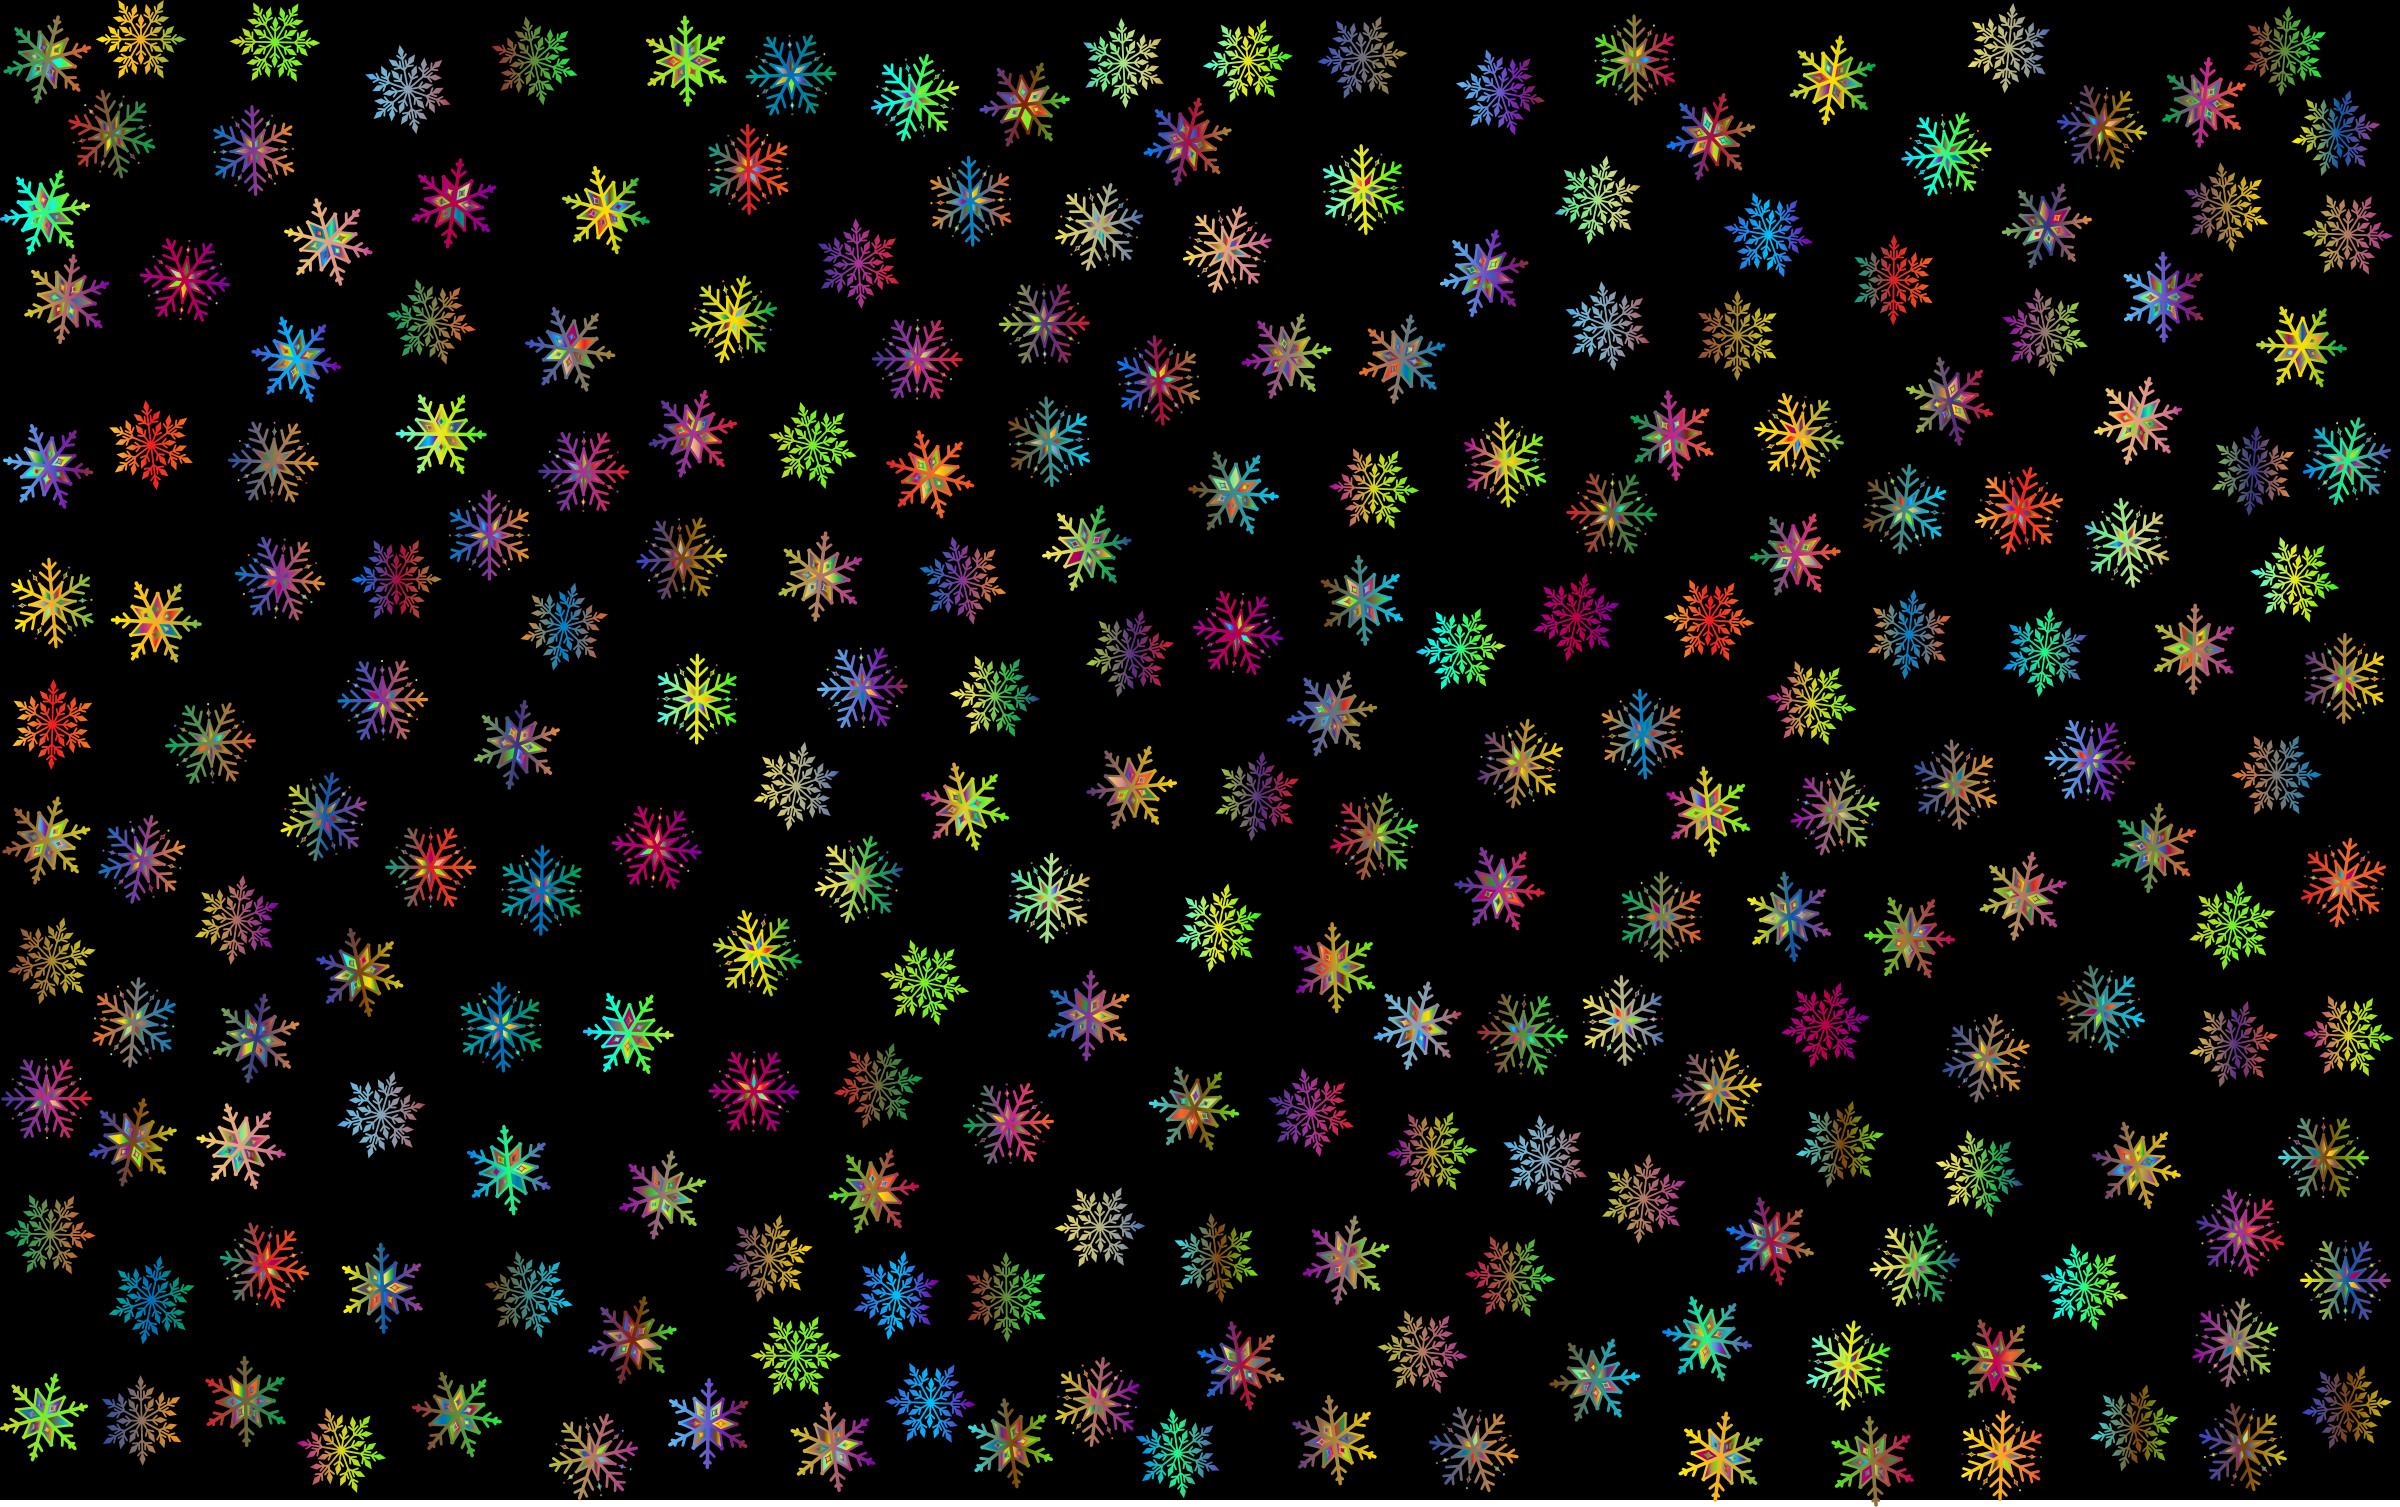 Prismatic Snowflakes Pattern 3 by GDJ